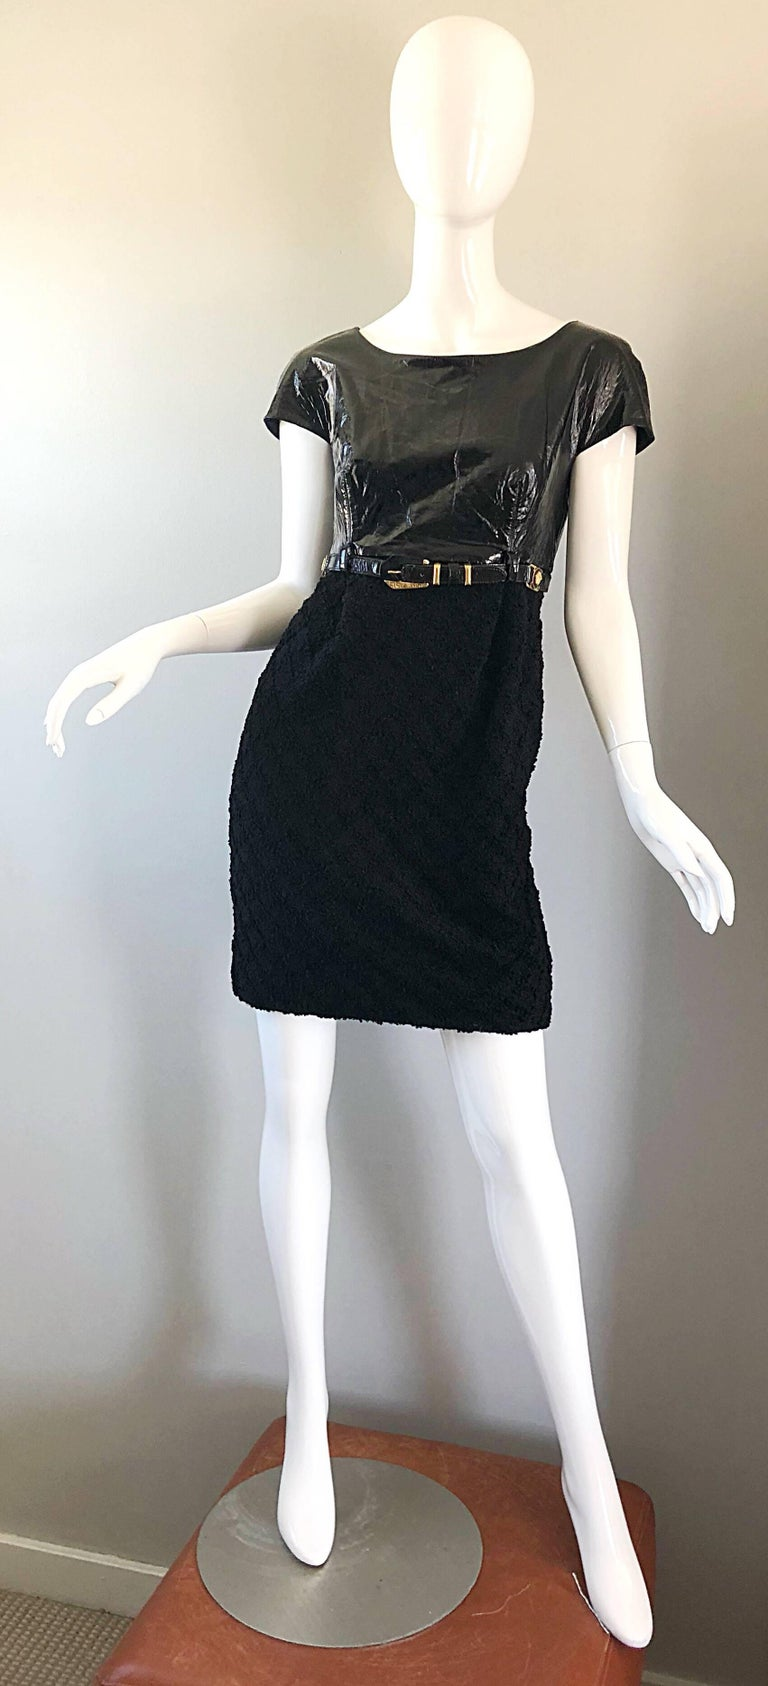 Documented Gianni Versace Couture Vintage F/W 1994 Black PVC Wool 90s Dress In Excellent Condition For Sale In Chicago, IL